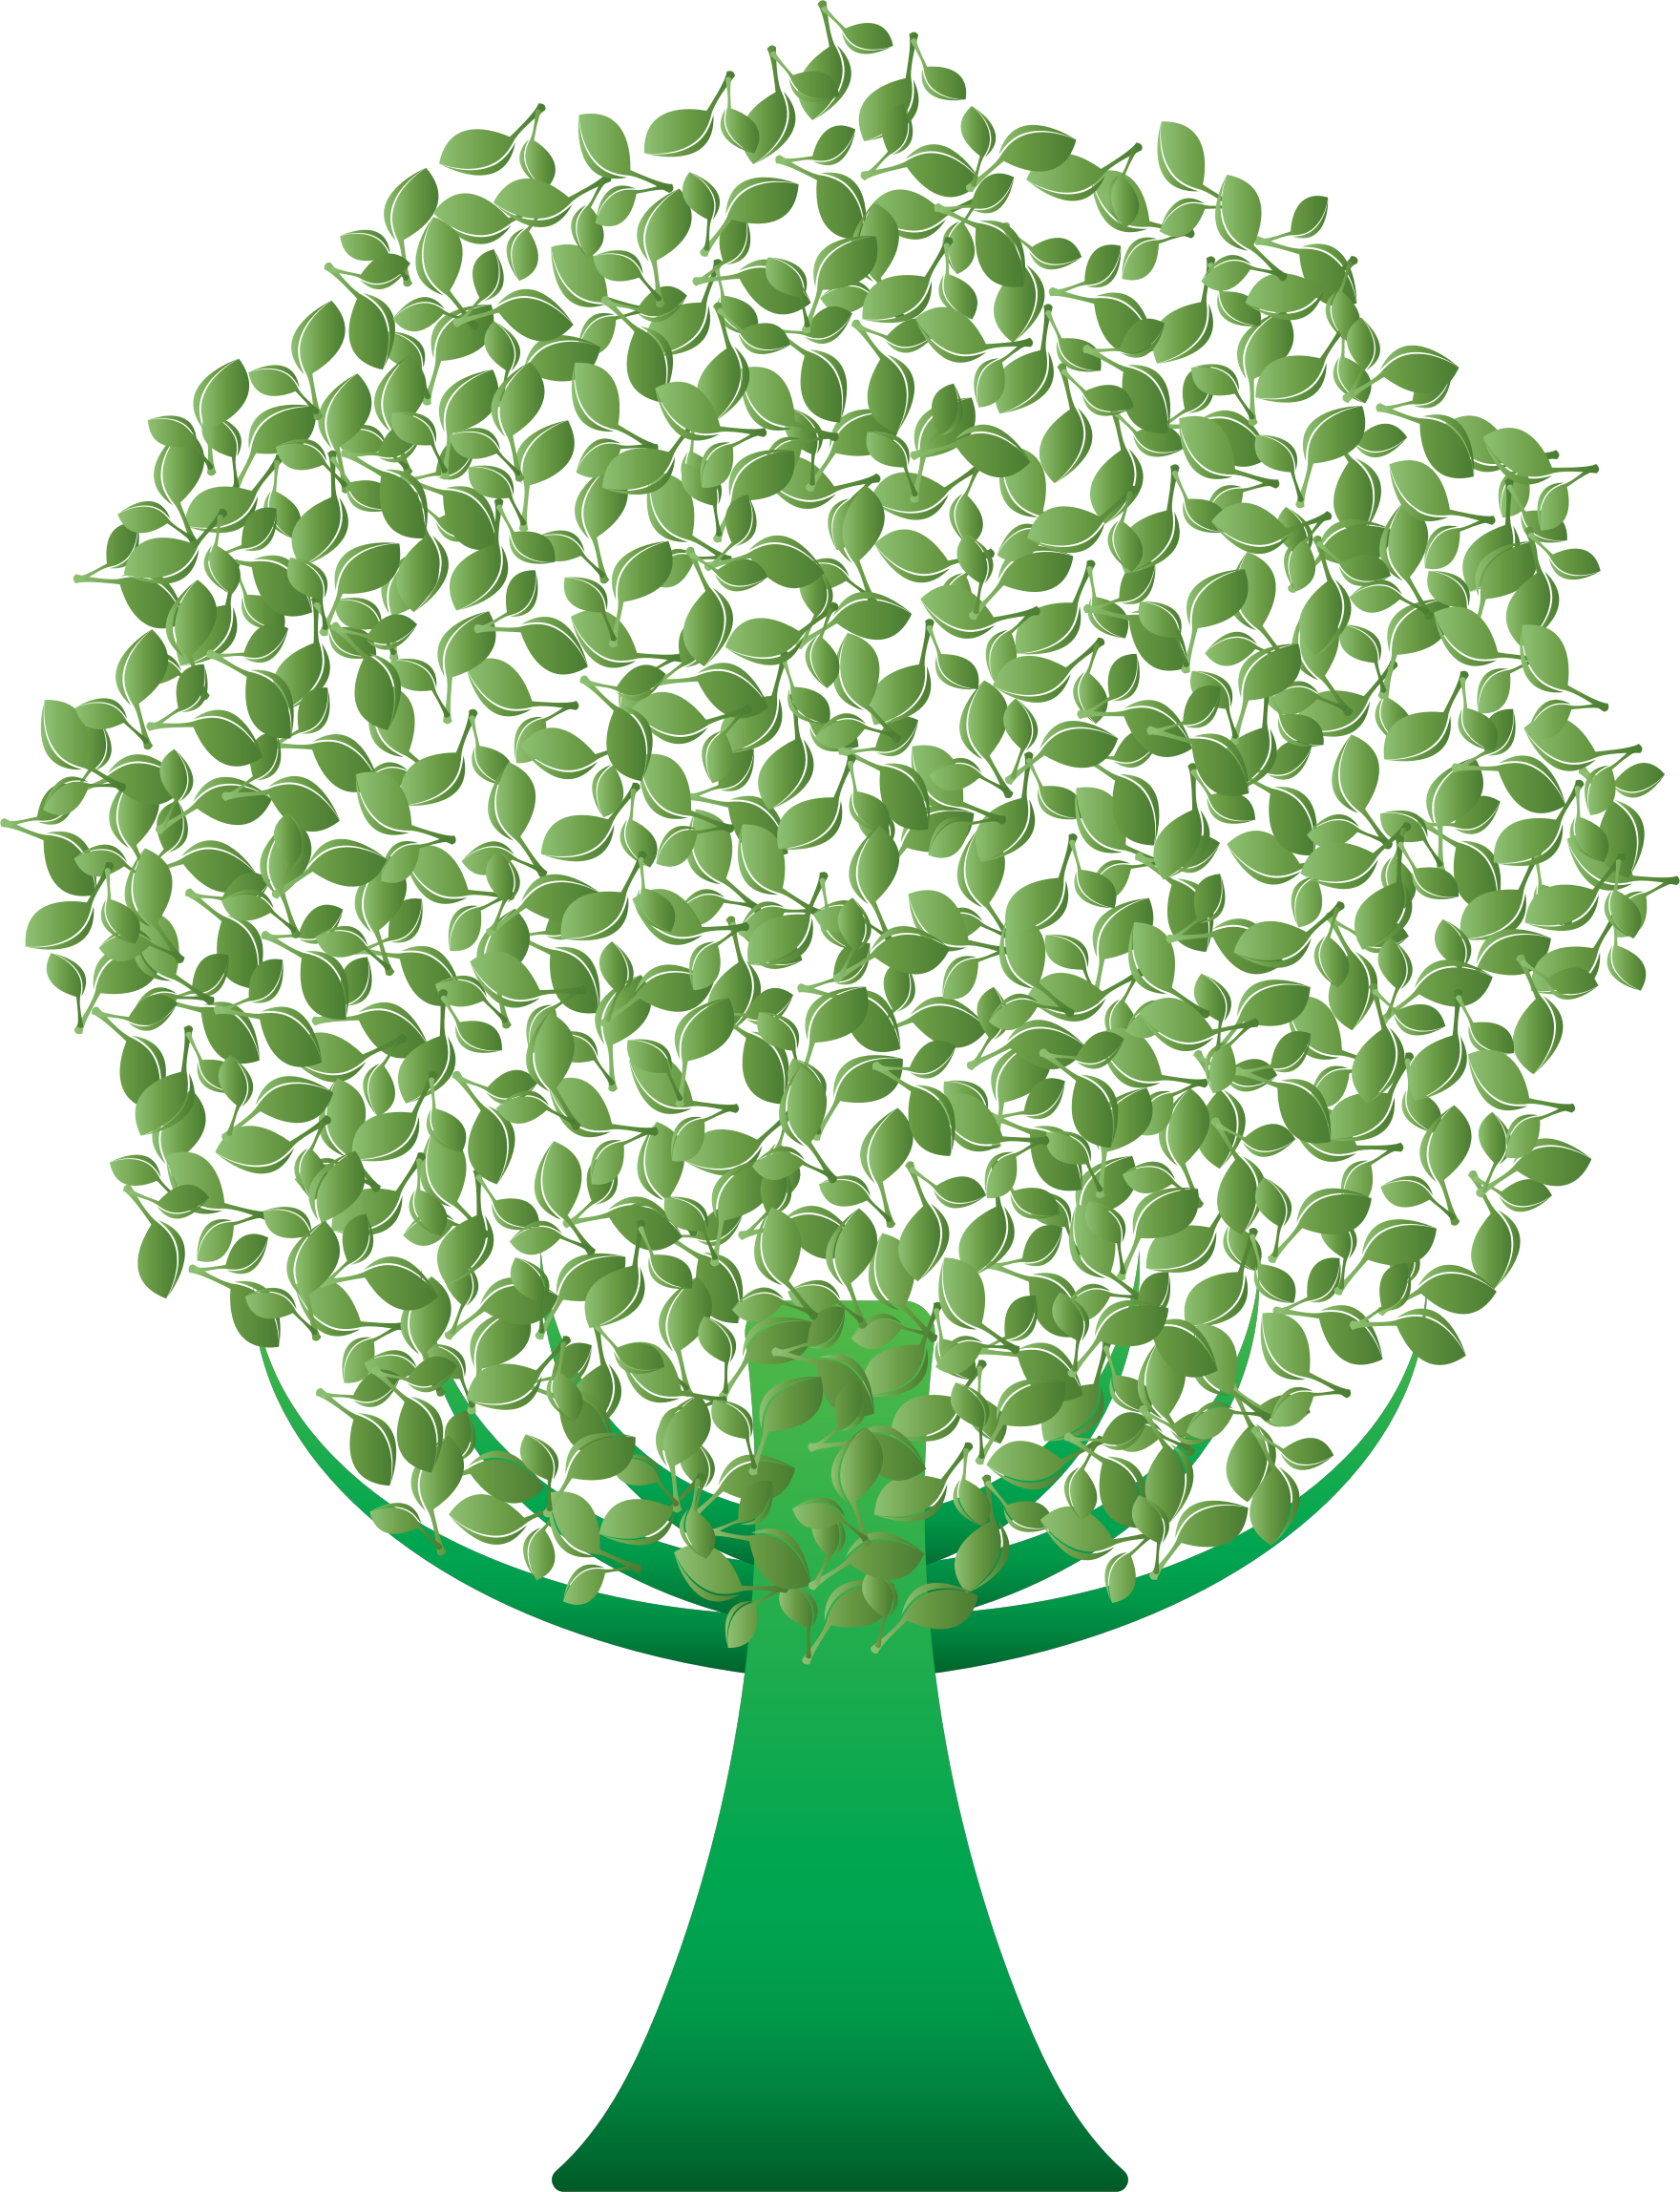 Tree clipart green. Abstract big image png